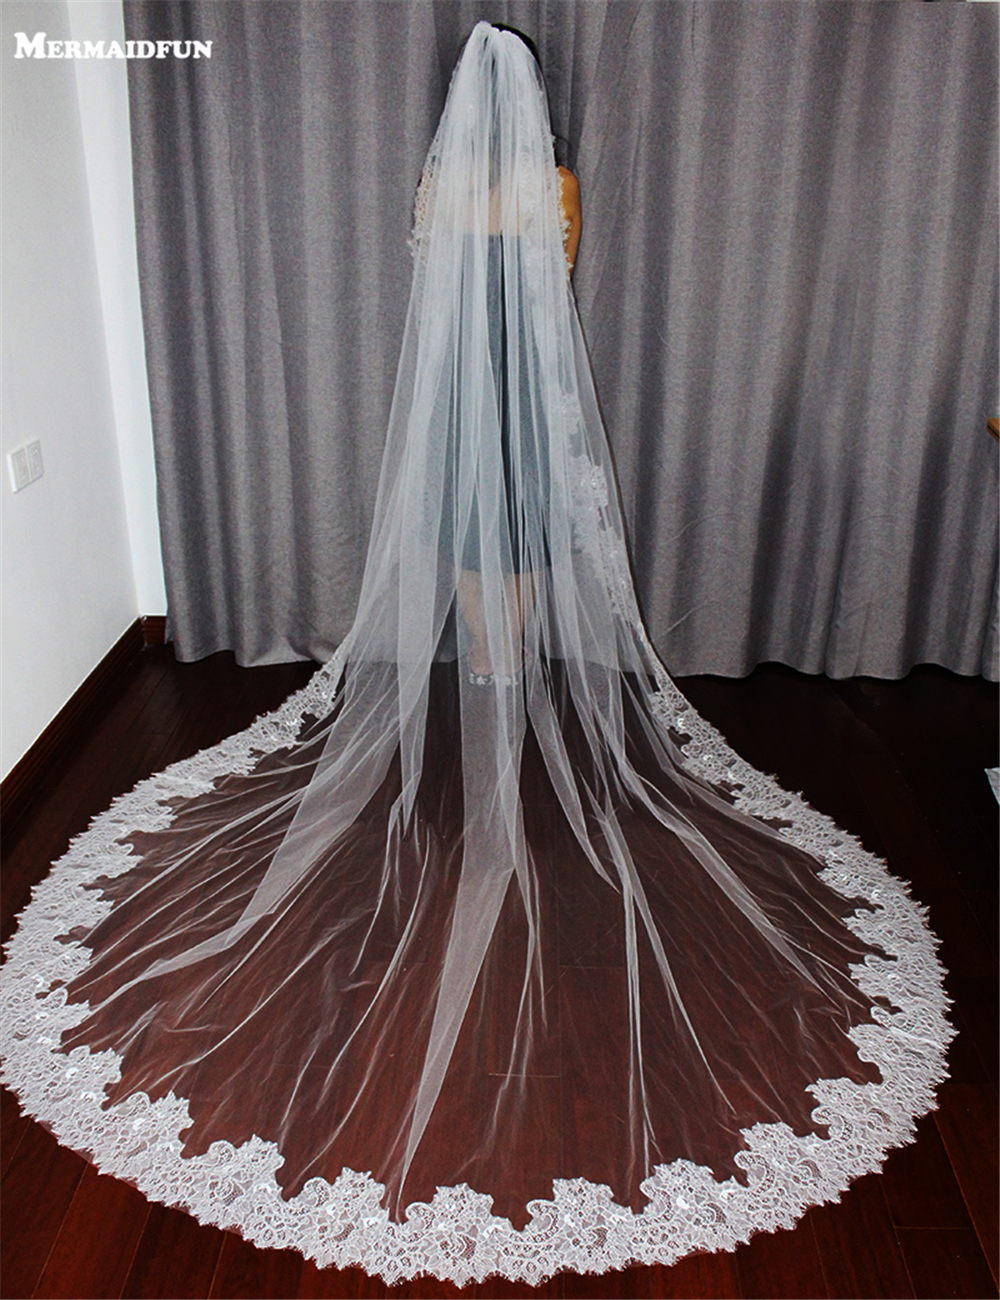 2019 Cathedral Wedding Veil Wholesale / Retail 100% Lace Edge 3M Long Lace Veil Wedding / Bridal Veil / Bridal Accessories / Head velo